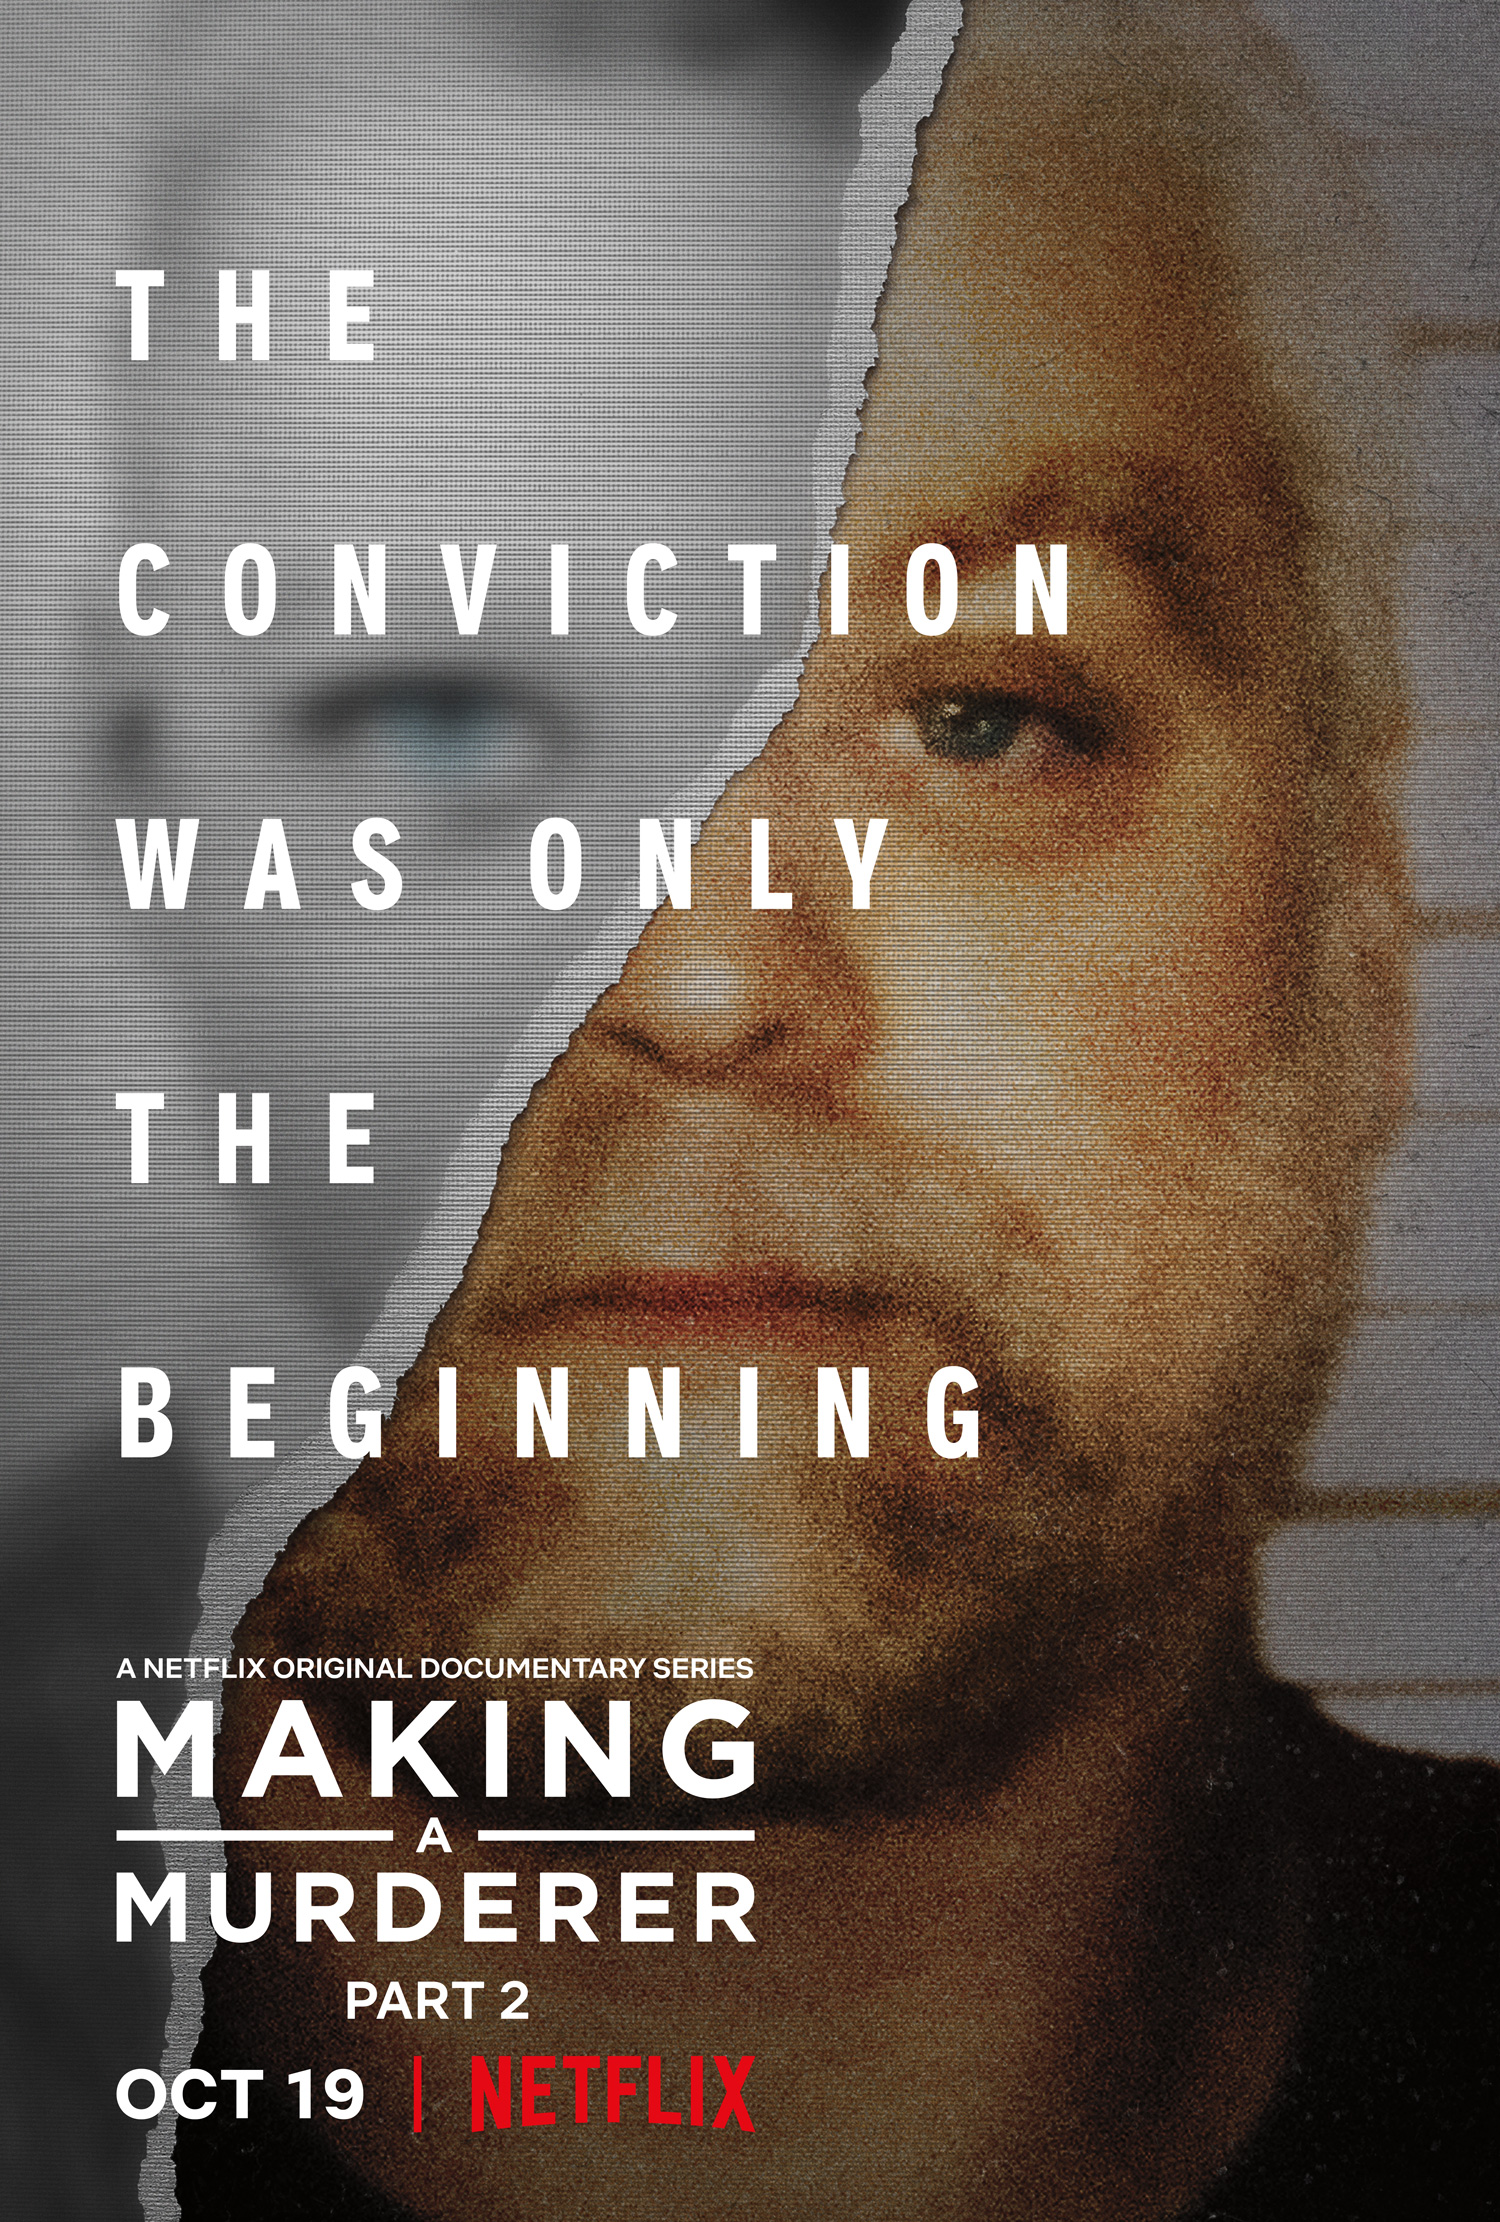 Making a Murderer Part 2 trailer exposes Steven Avery's biggest weakness in Teresa Halbach murder case